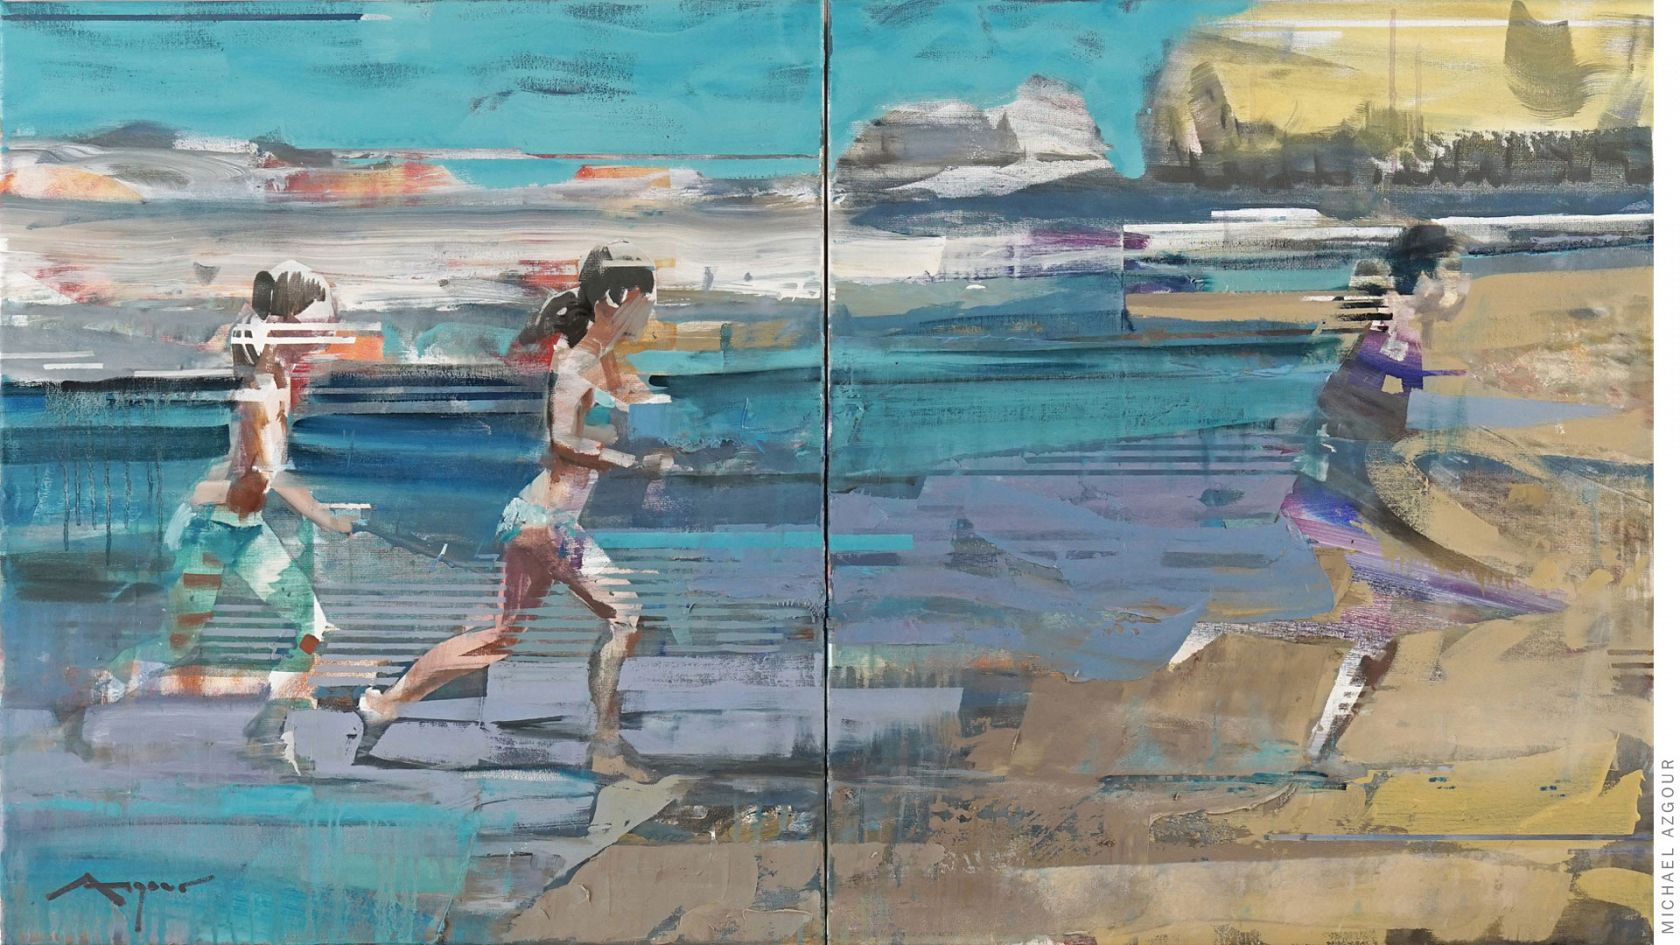 Painting titled On the Shore II, by contemporary abstract figurative artist, Michael Azgour, of a girl running on the beach